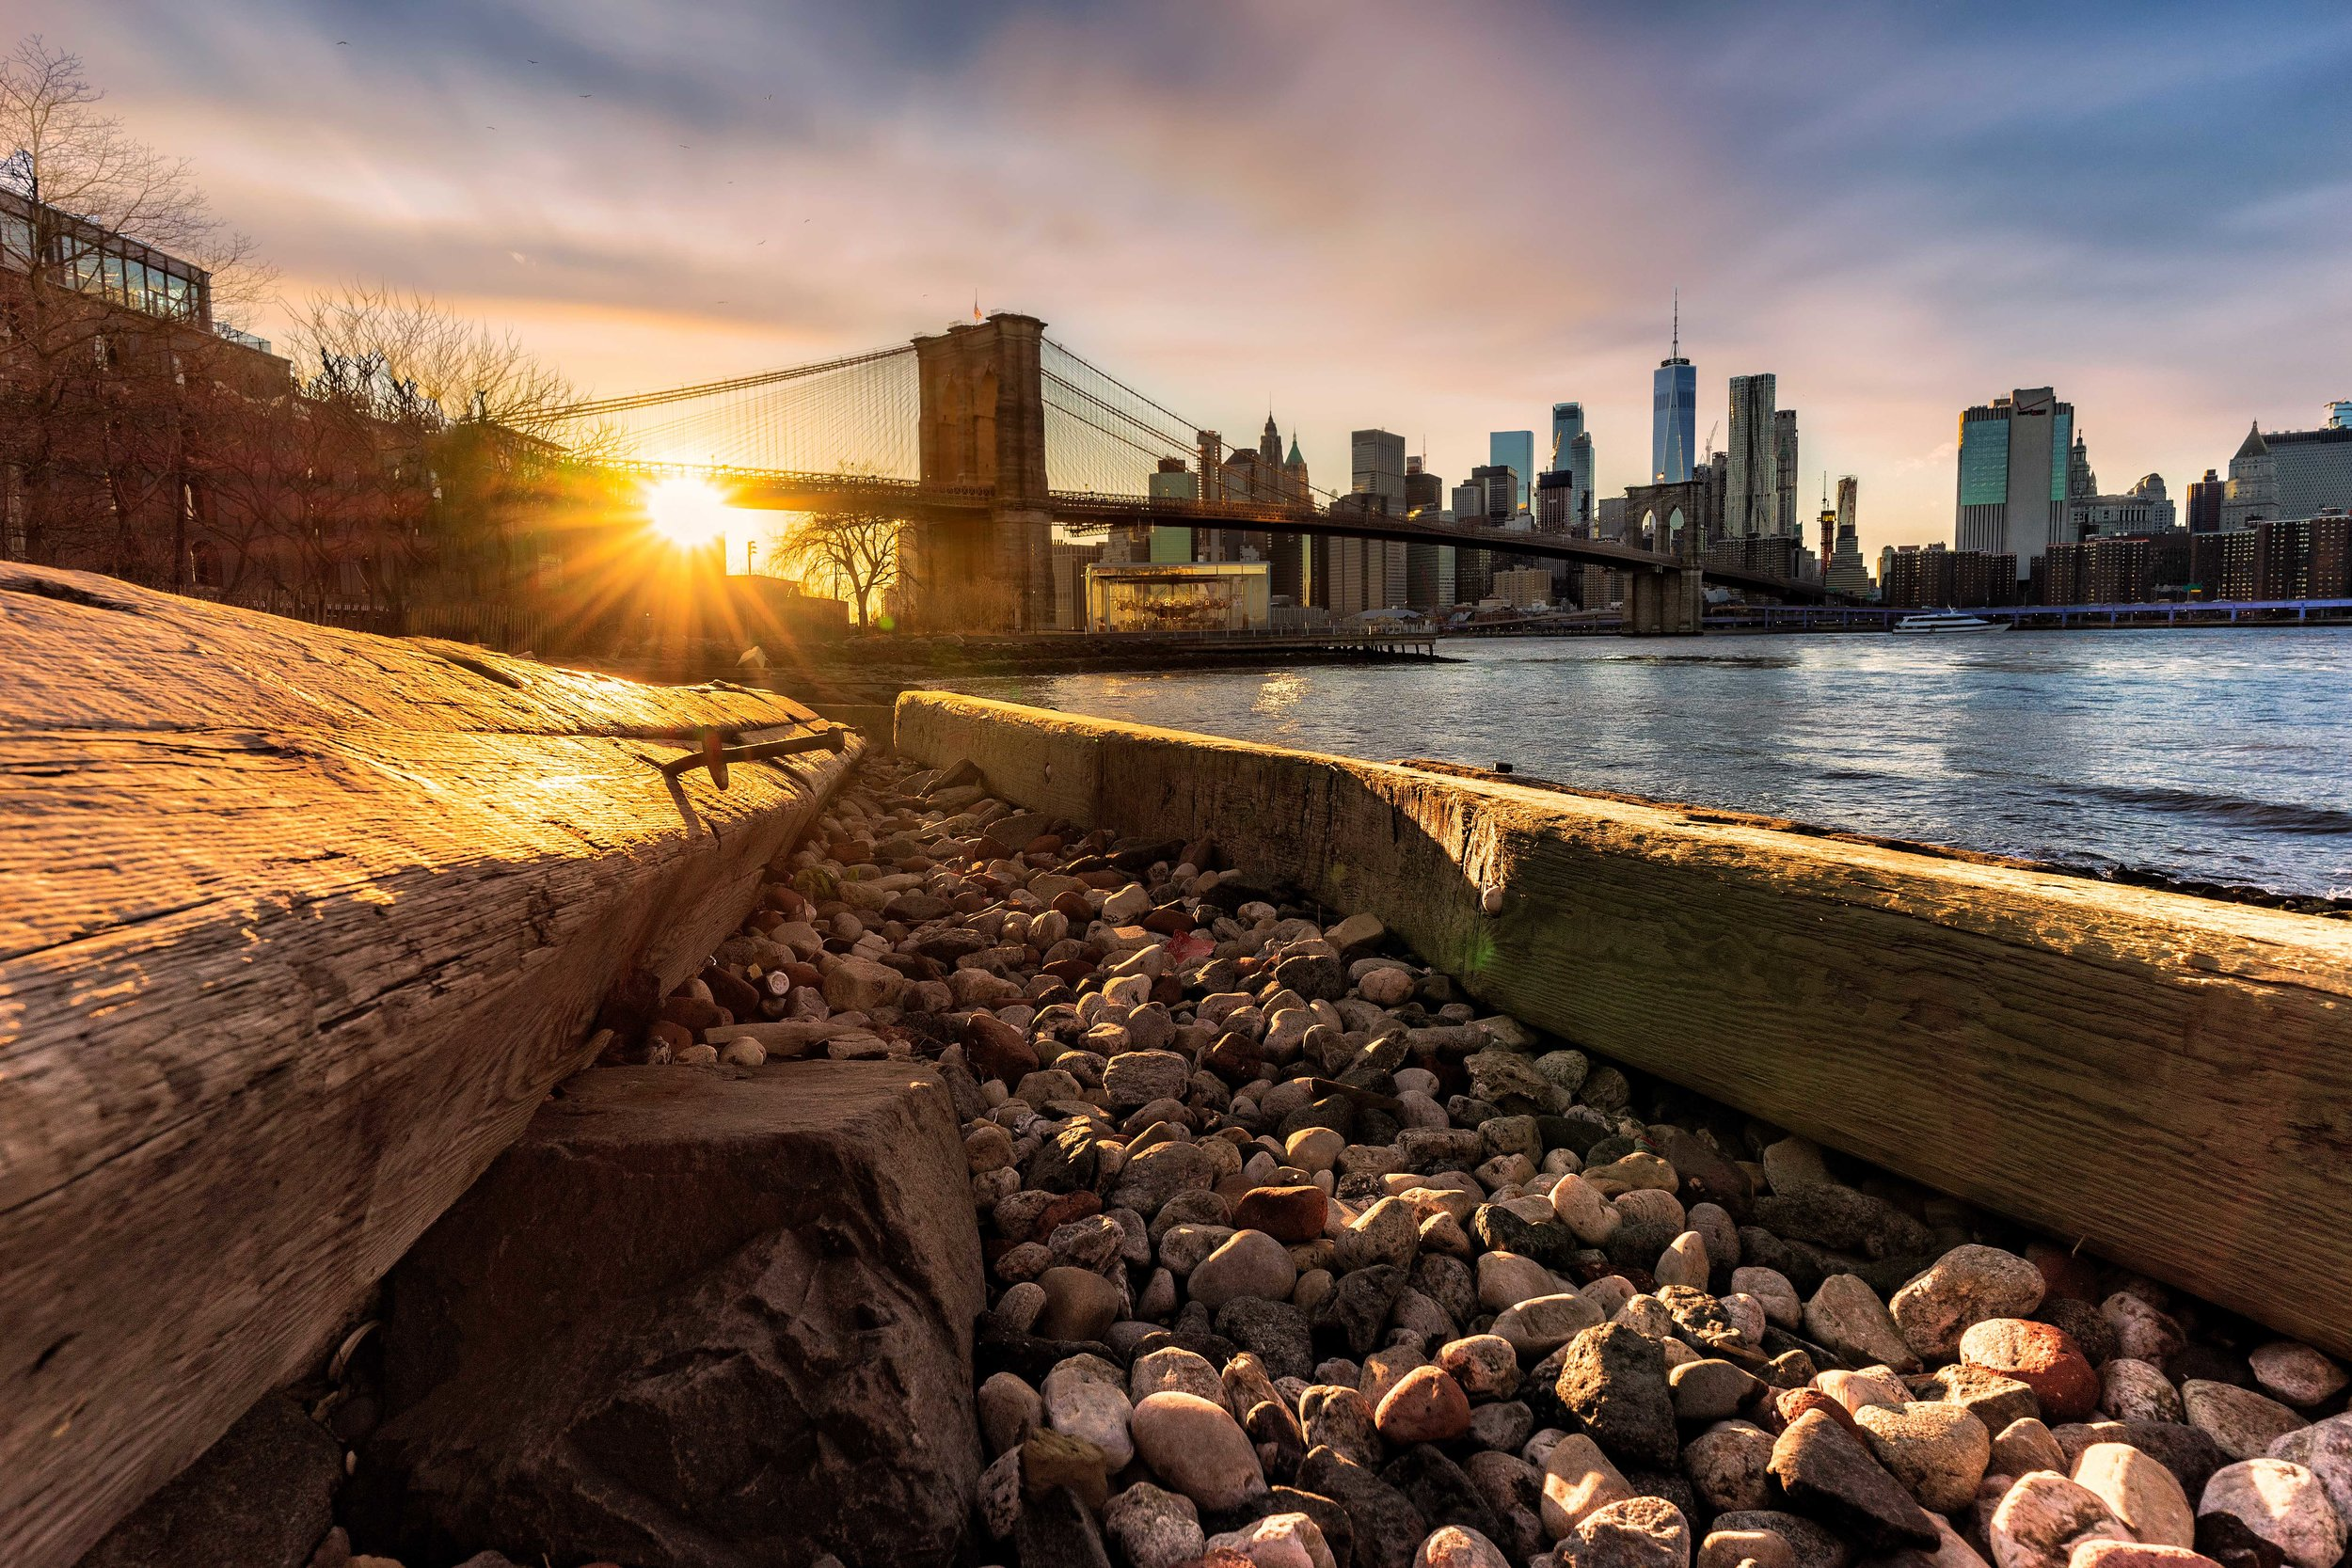 pebble beach new york brooklyn bridge.jpg